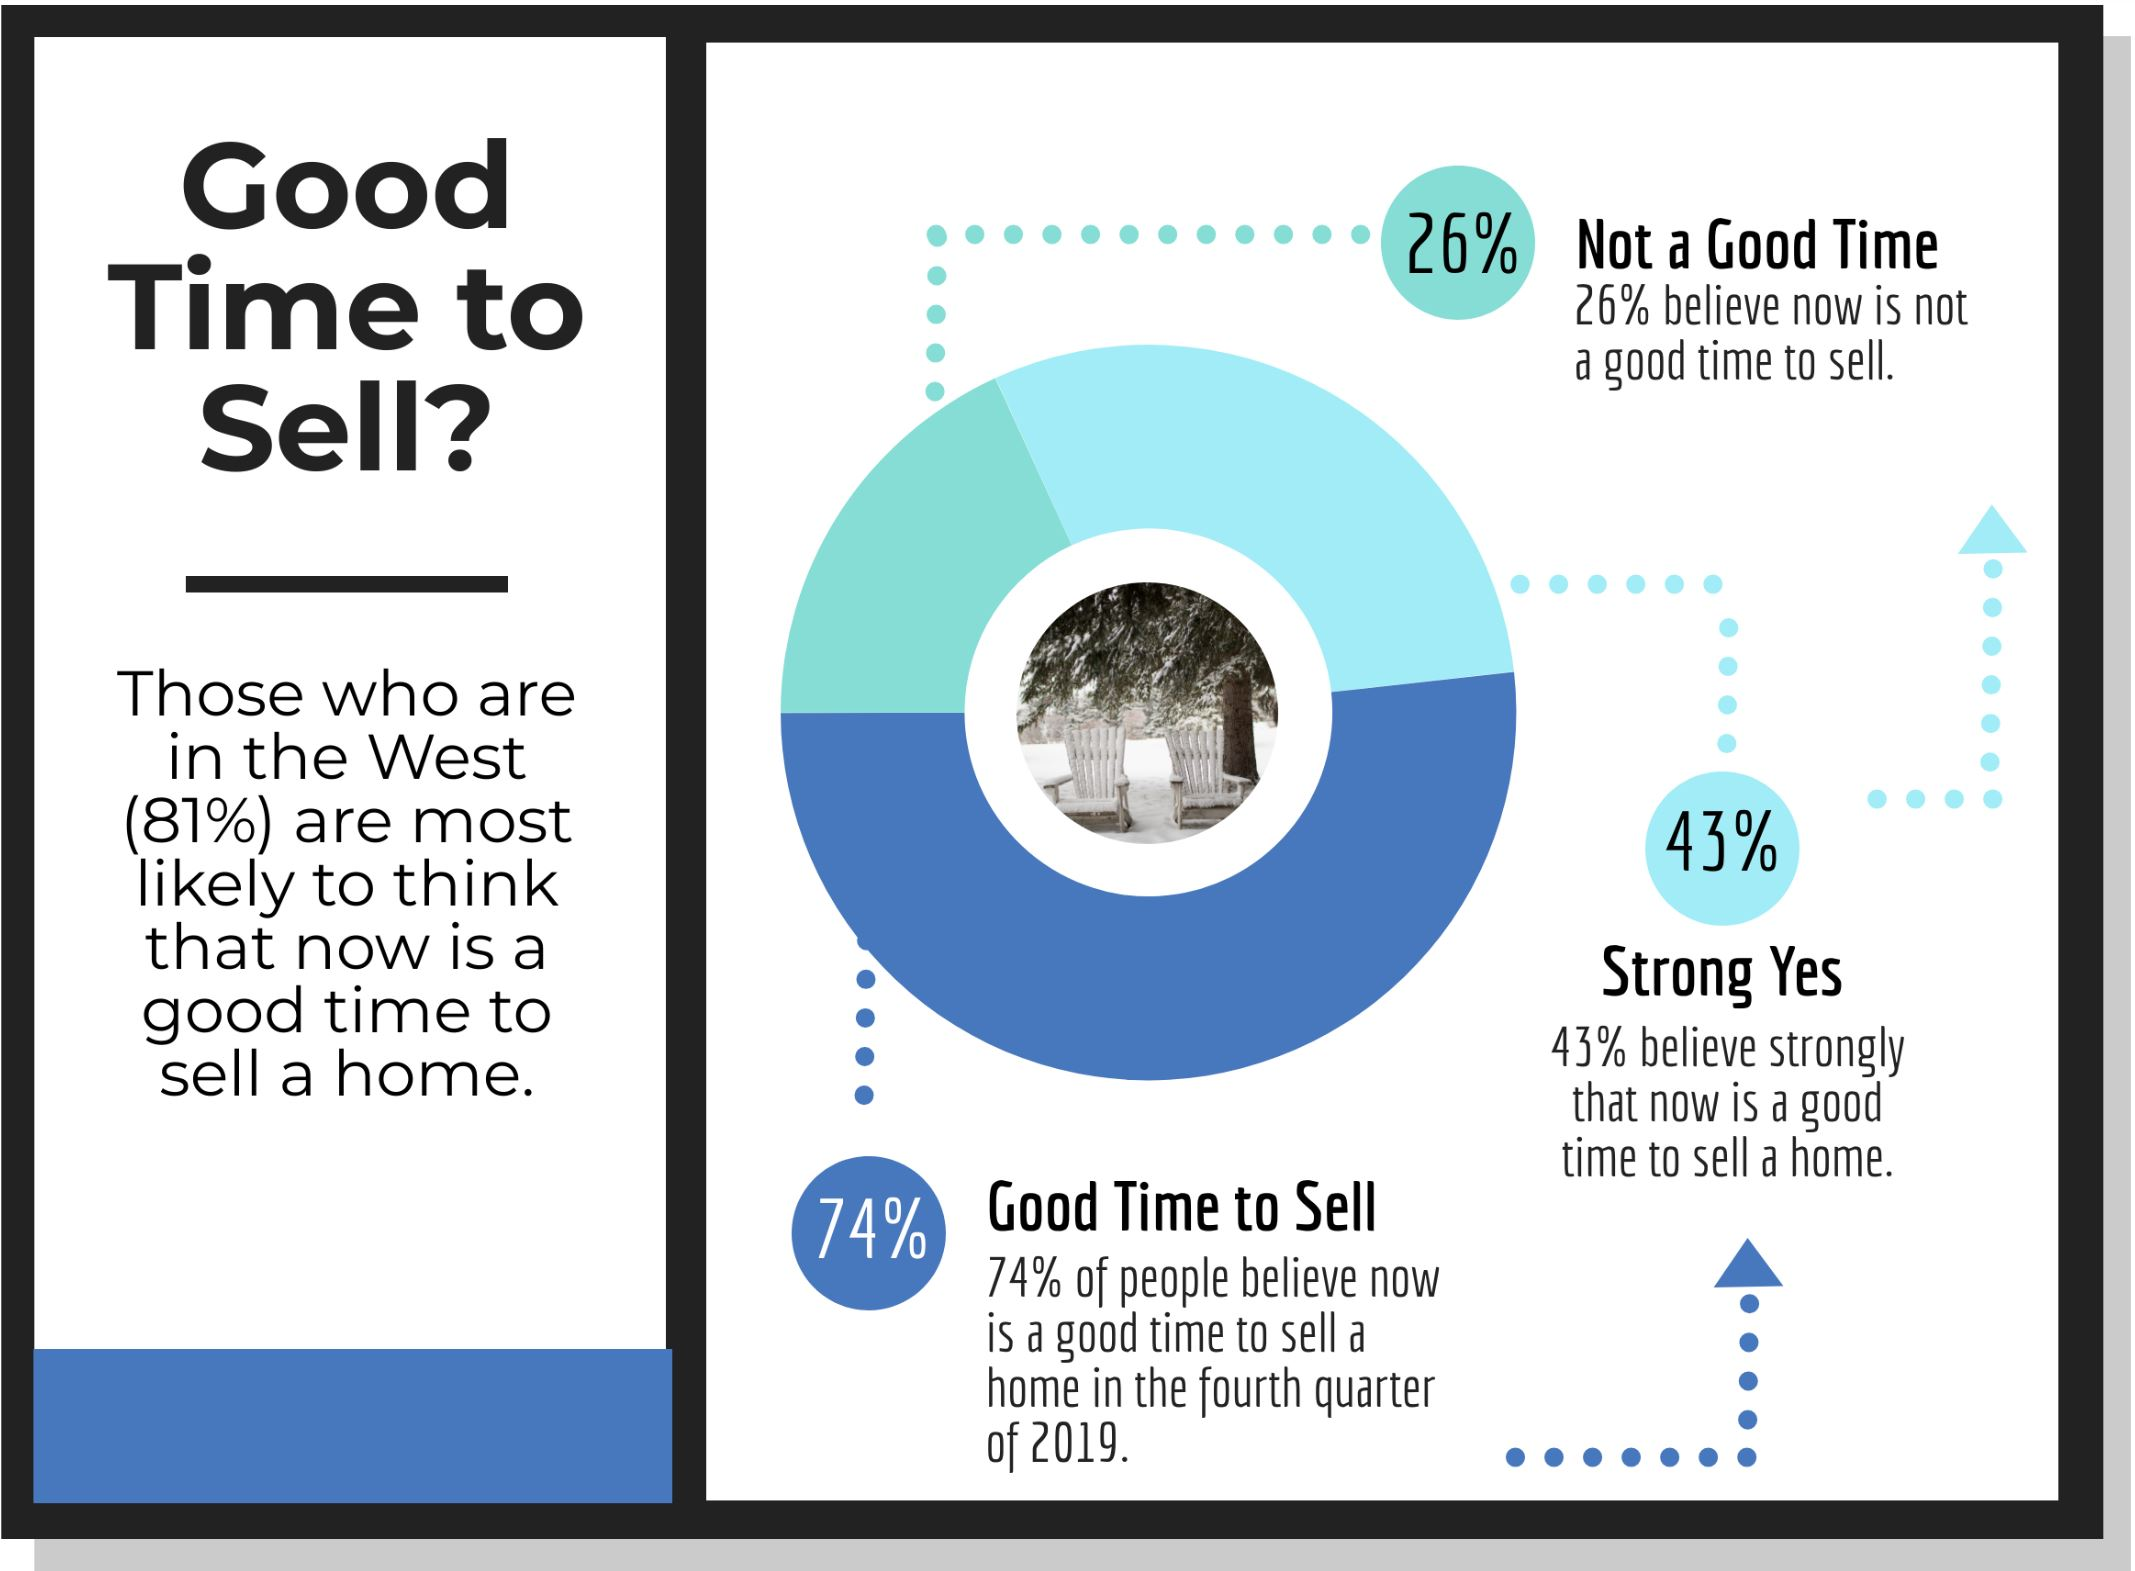 From NAR Realtor Magazine Jan 2020 01 09 Home Survey January 2020 Good time to Sell Hoey Team eXp Realty